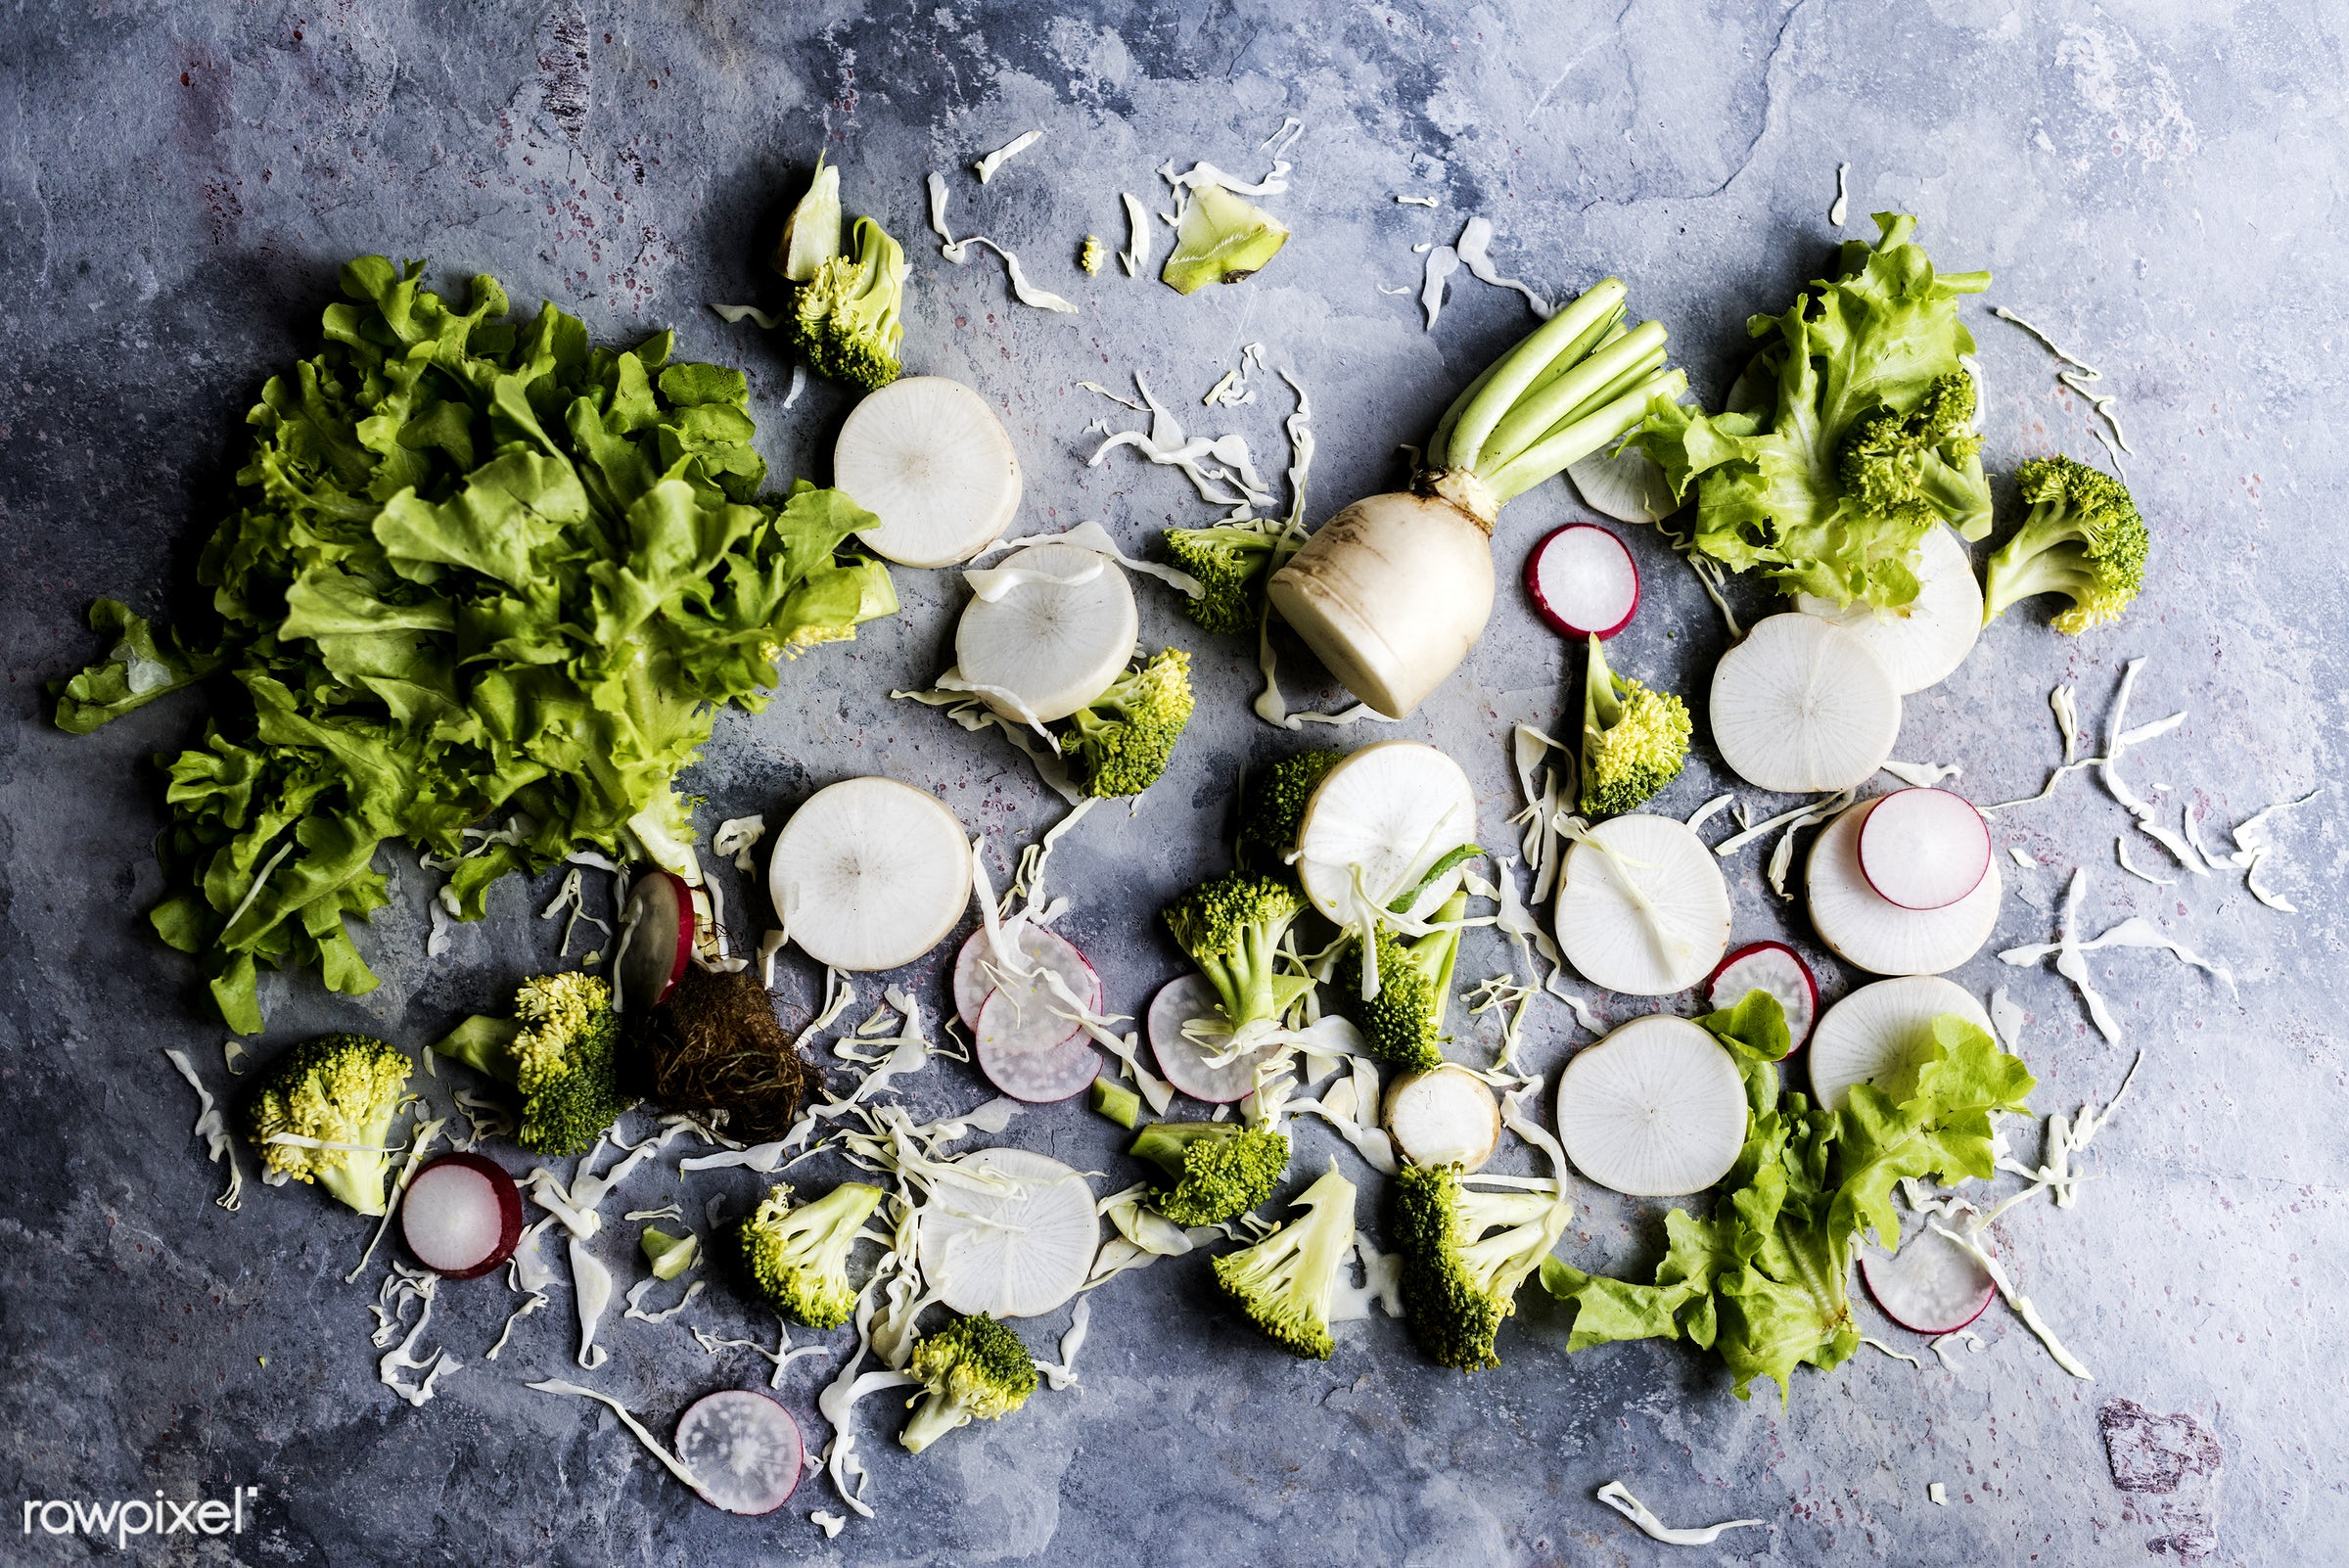 raw, salad, nobody, grunge background, diverse, ingredients, farm, nature, fresh, mixed, broccoli, various, aerial view,...